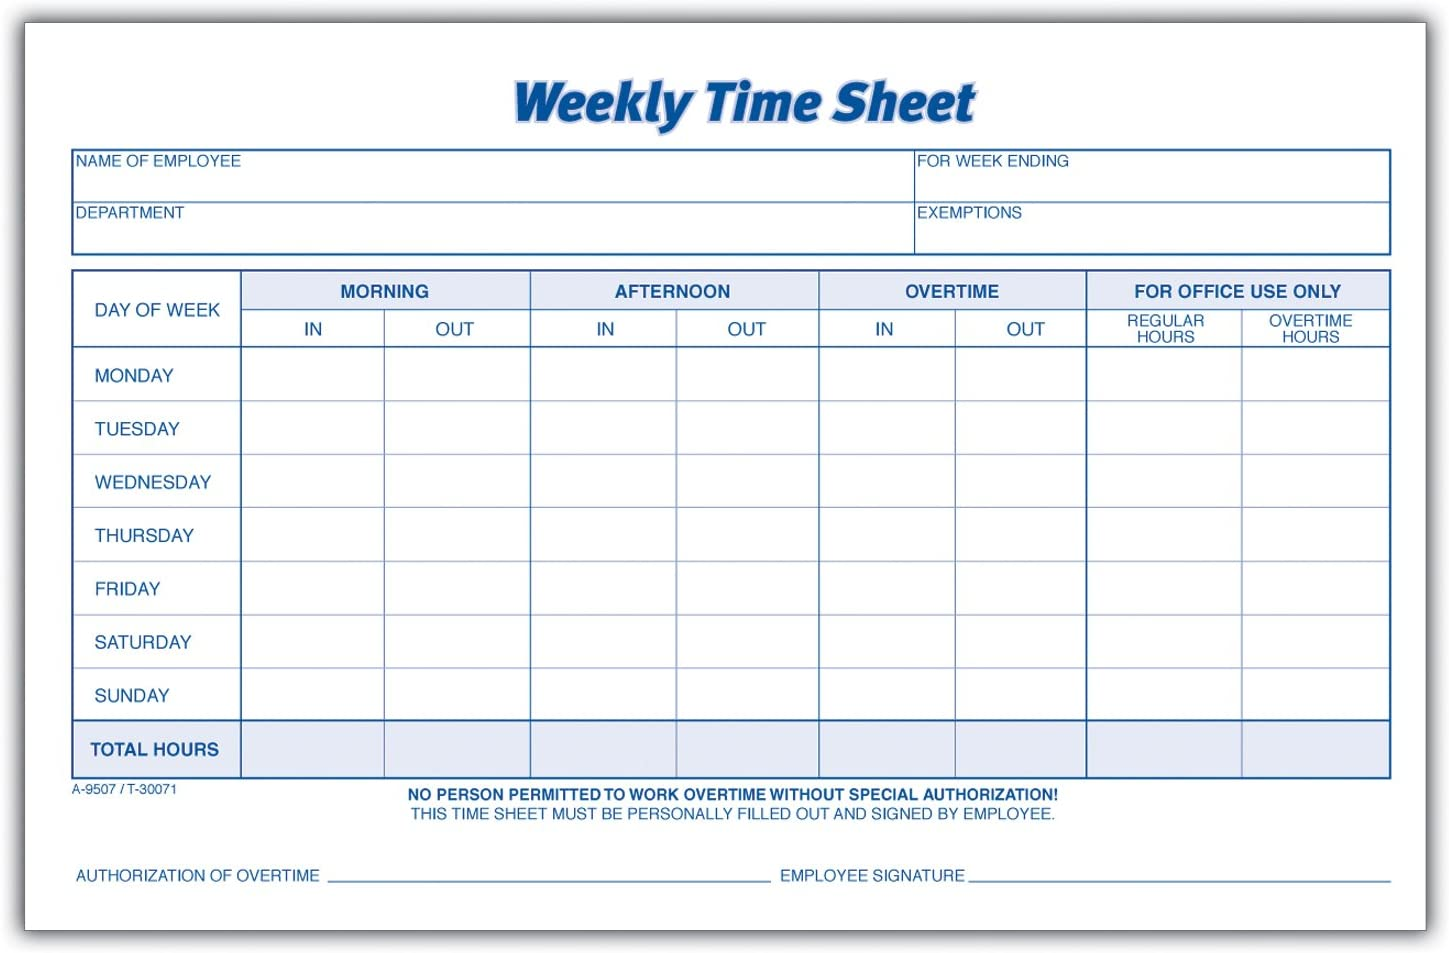 Adams Time Sheet 9 X 5 5 Inch Weekly Format 2 Part Carbonless 100 Pack White Canary Nc9507 Amazon Ca Office Products